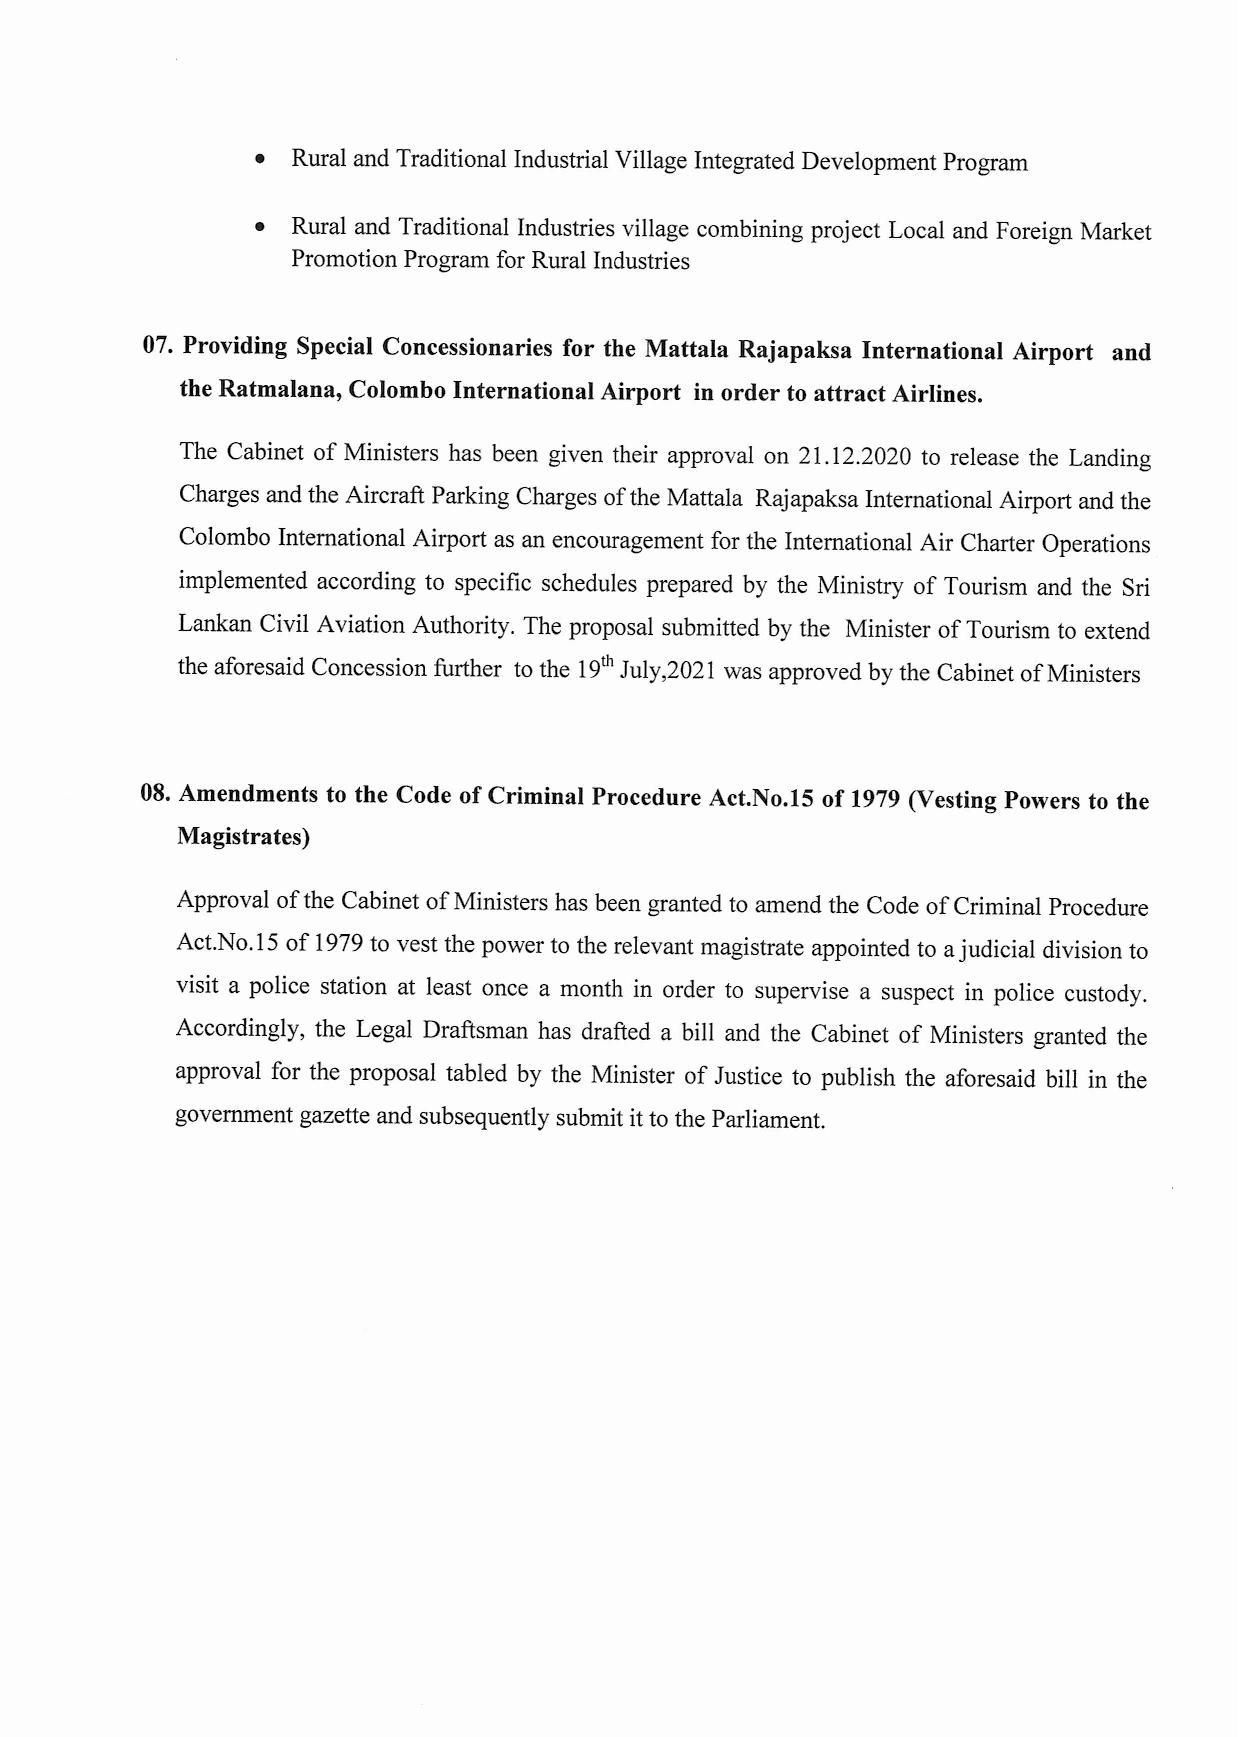 Cabinet Decision on 15.02.2021 English page 004